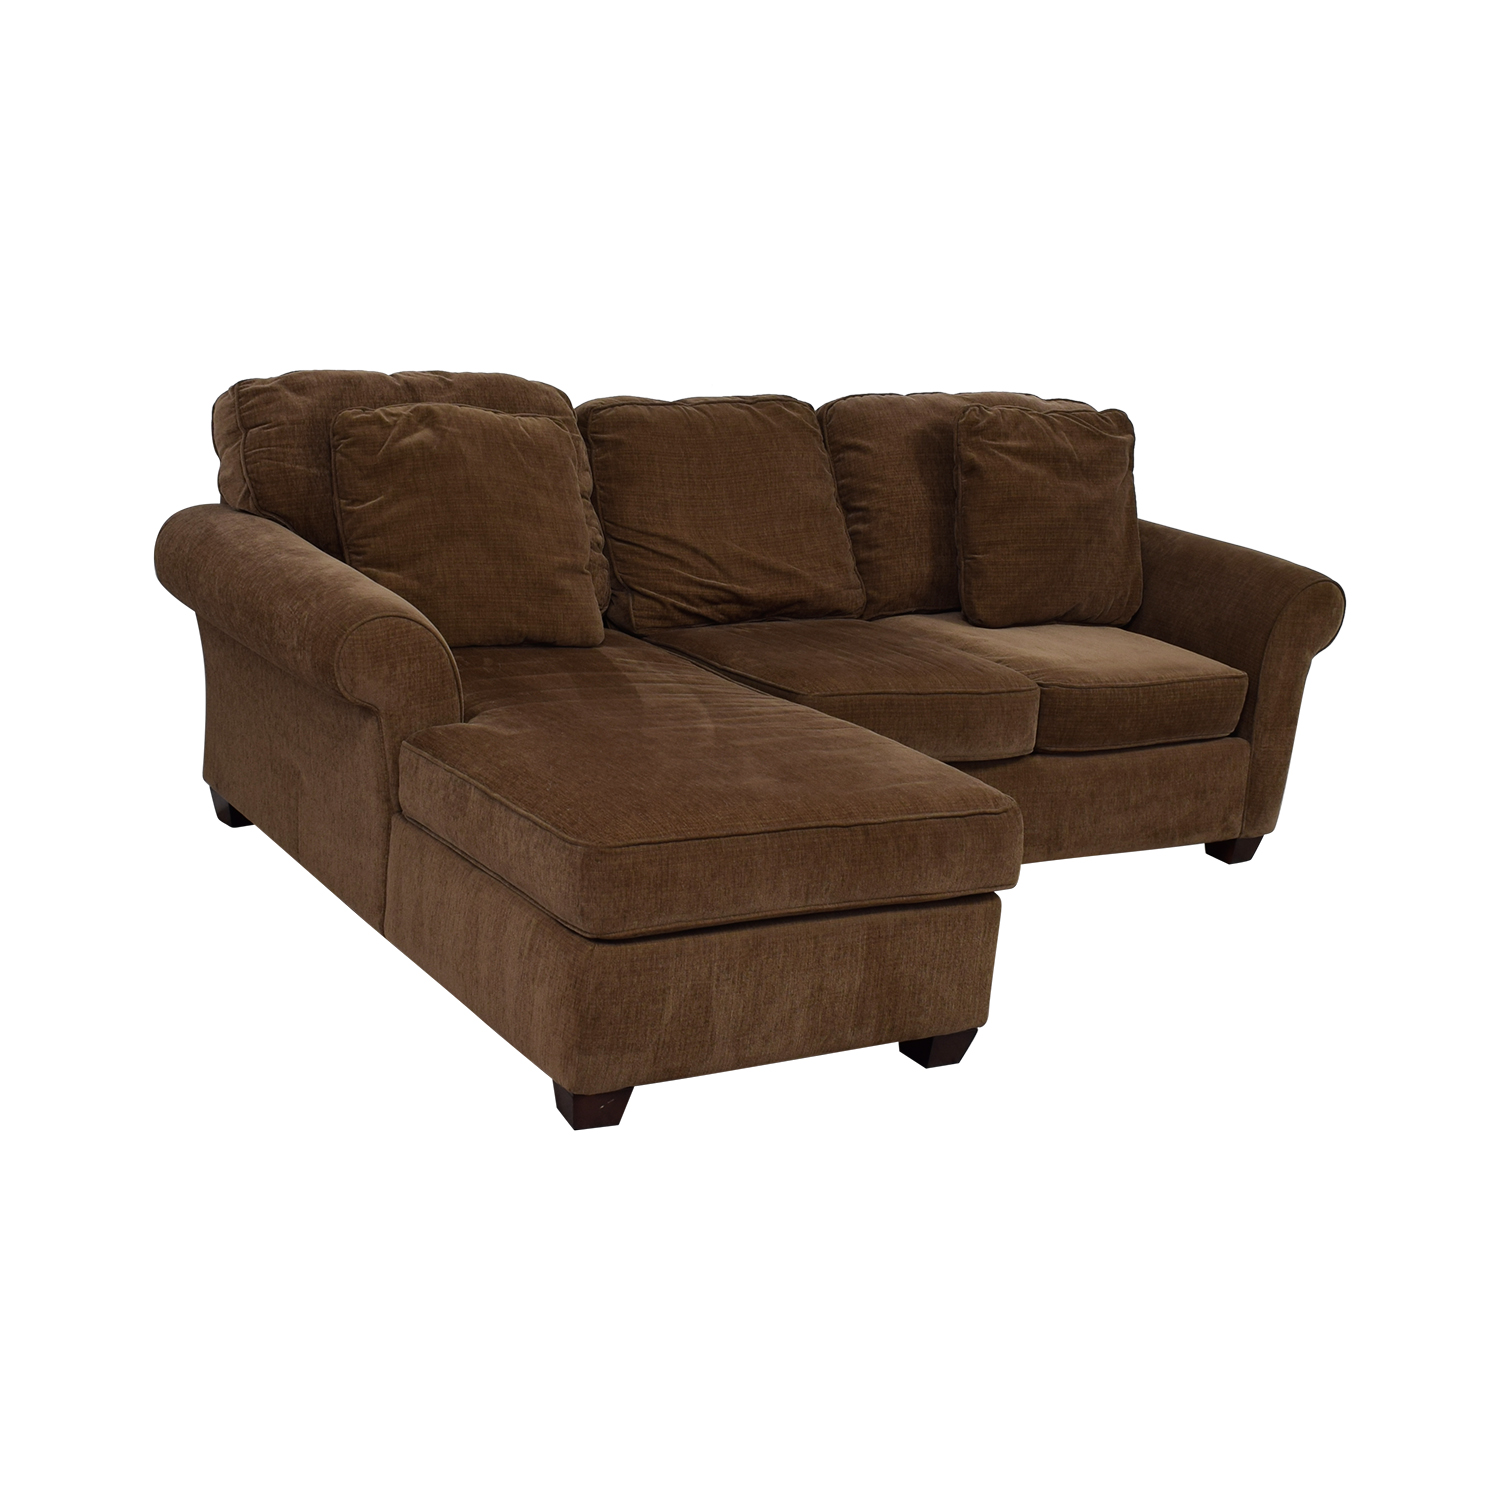 68 Off Raymour Amp Flanigan Raymour Amp Flanigan Brown Multi Colored Tweed Chaise Sectional Sofas